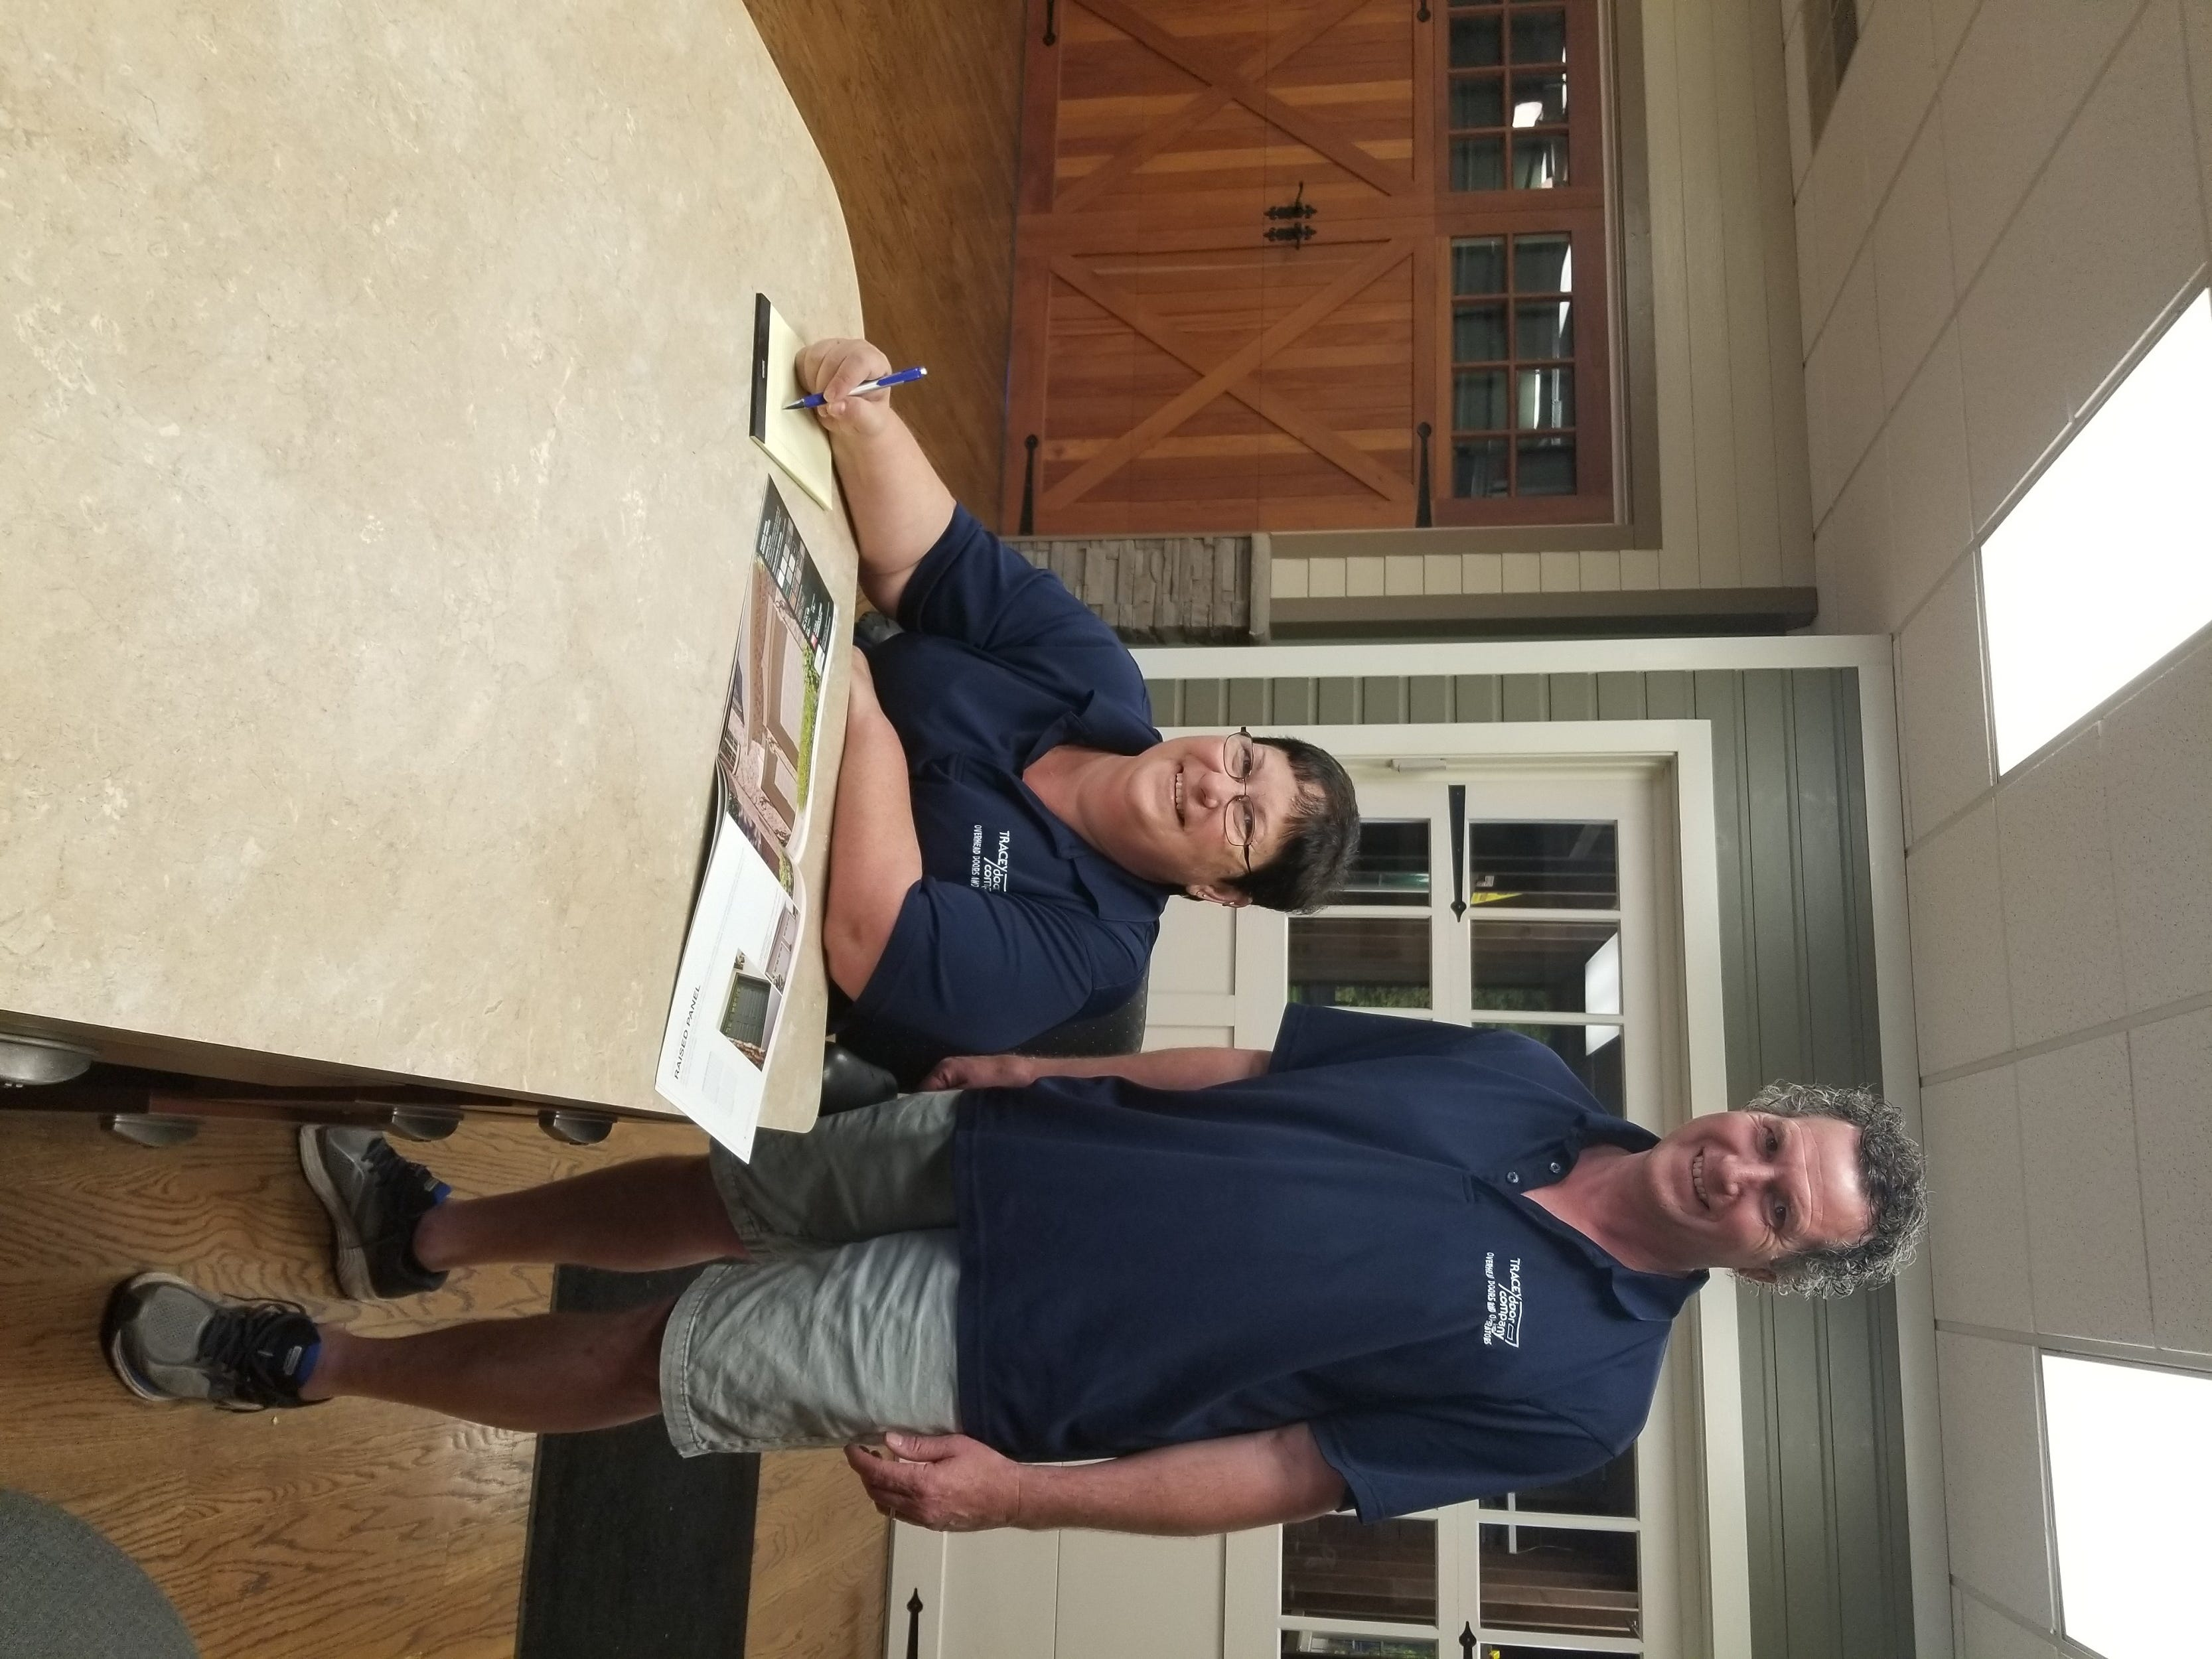 Michelle Tracey Stundtner and her brother Tim Tracey.  sc 1 st  Democrat and Chronicle & Small business spotlight: Chances are you\u0027ve opened a Tracey Door